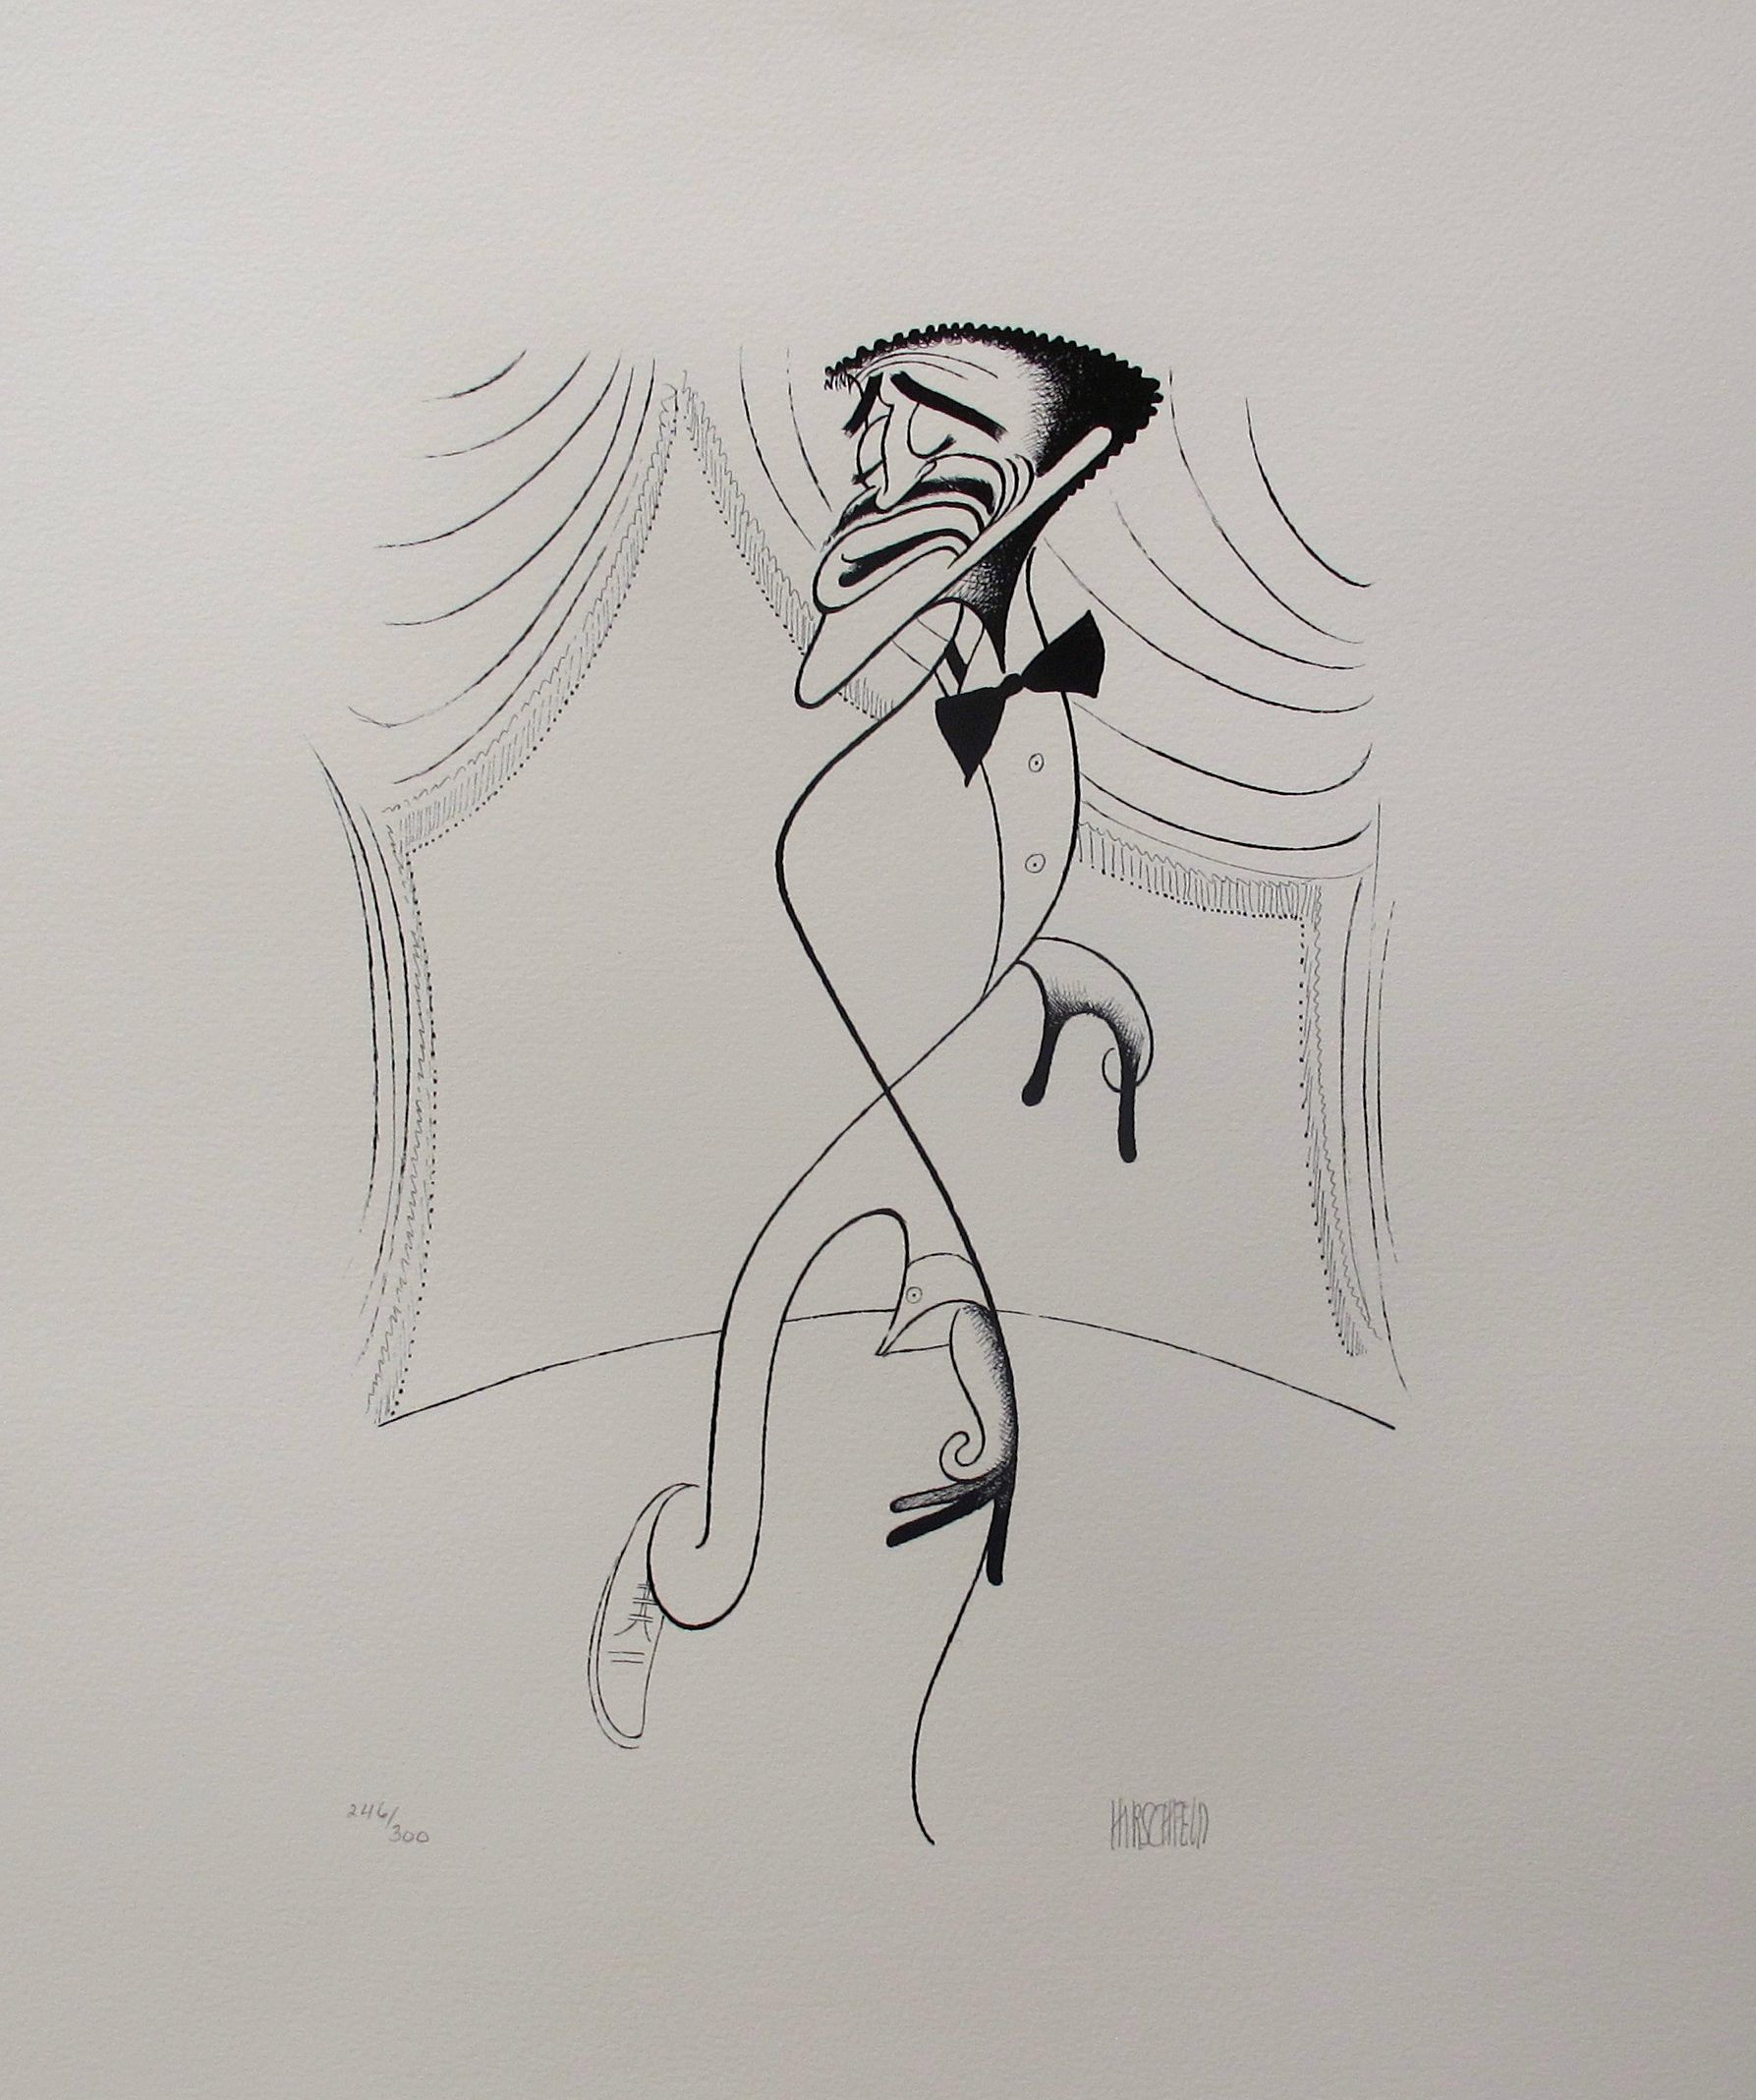 AL HIRSCHFELD SAMMY DAVIS JR. ON STAGE Hand Signed Limited Edition Lithograph